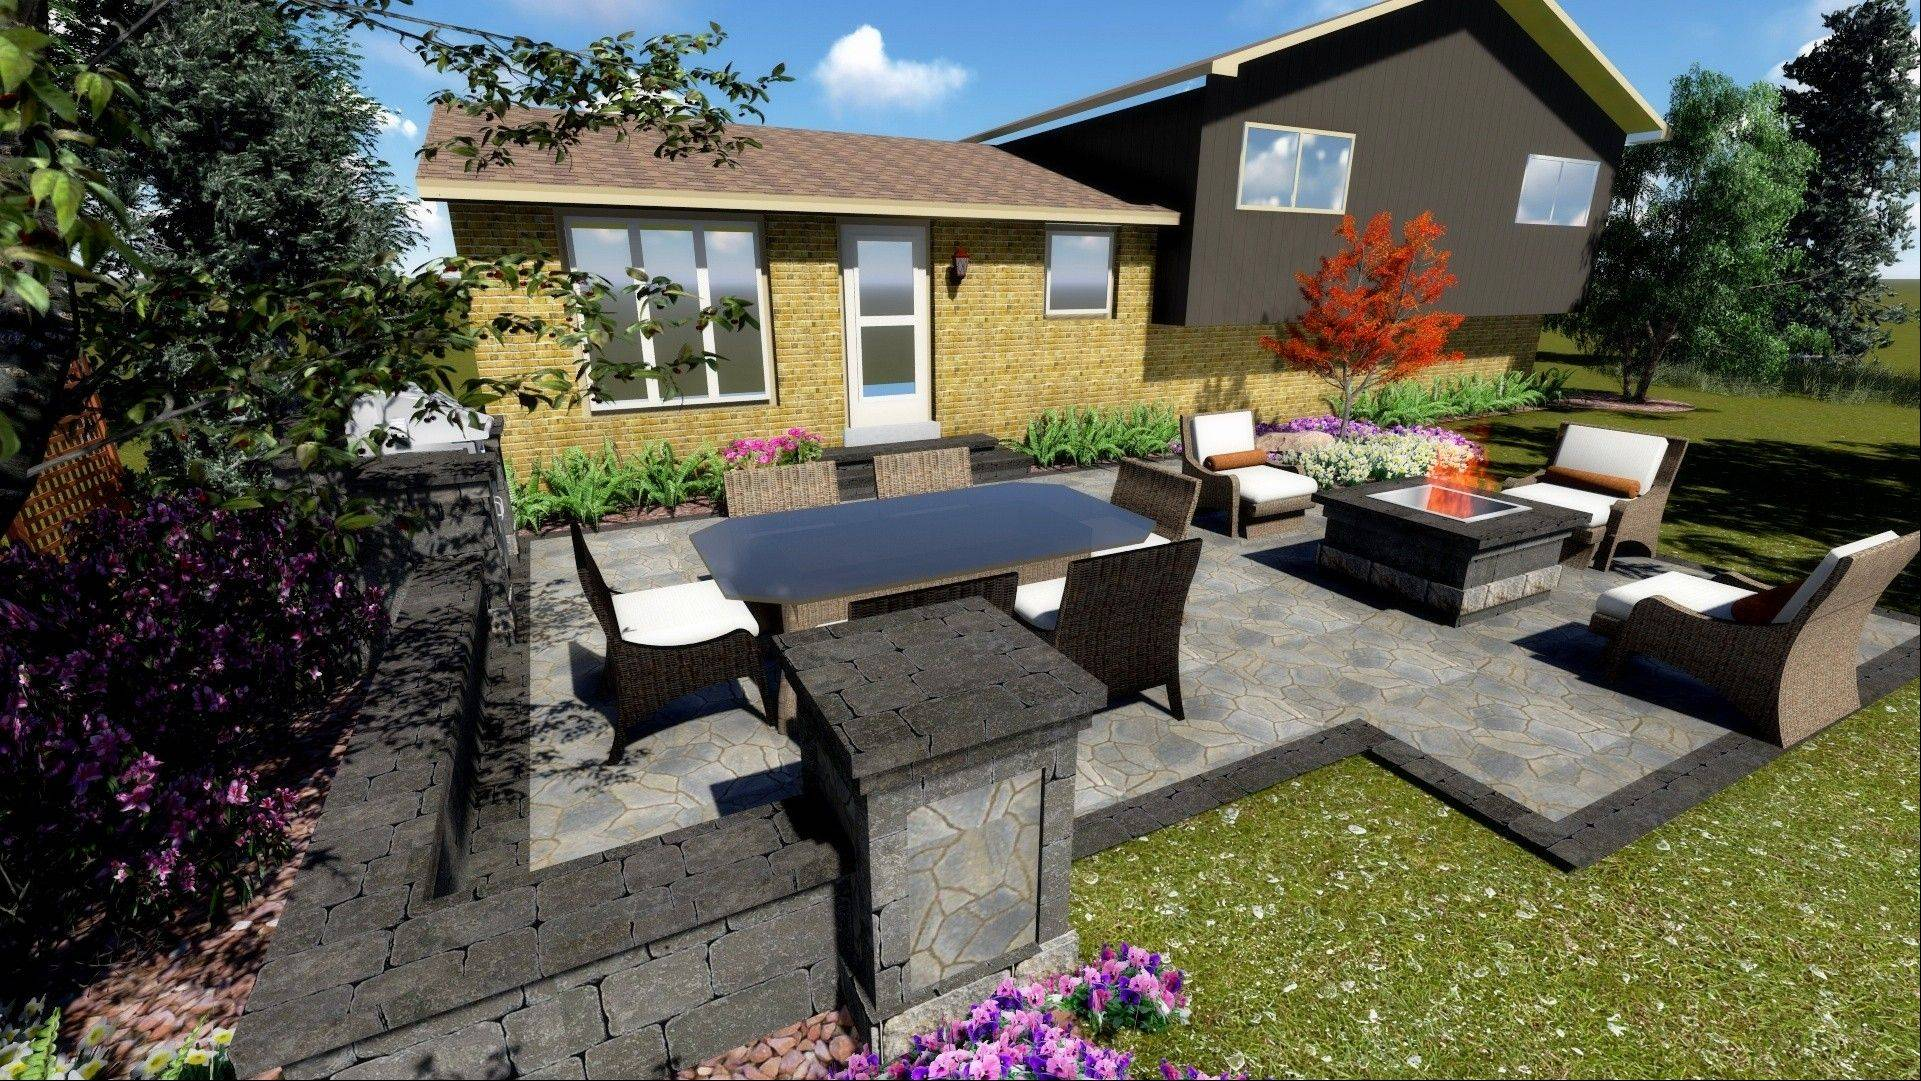 Belgard suggests the homeowner replace the old wooden desk with a Belgard Mega Arbel paver patio with a seat wall, fire pit and grill enclosure.